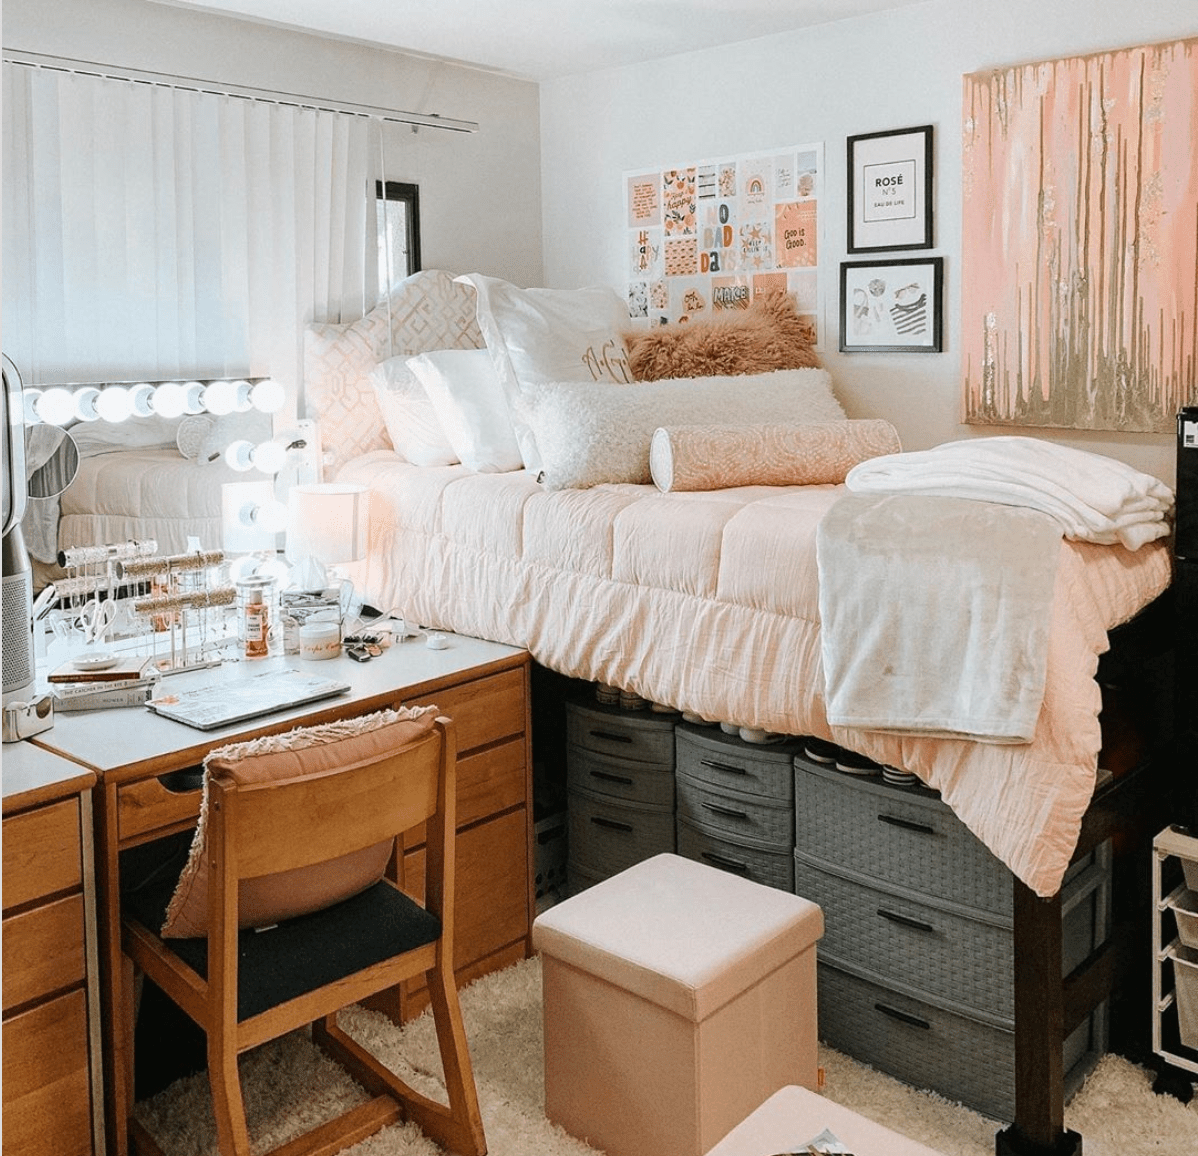 Decked-out dorm room with full vanity mirror.